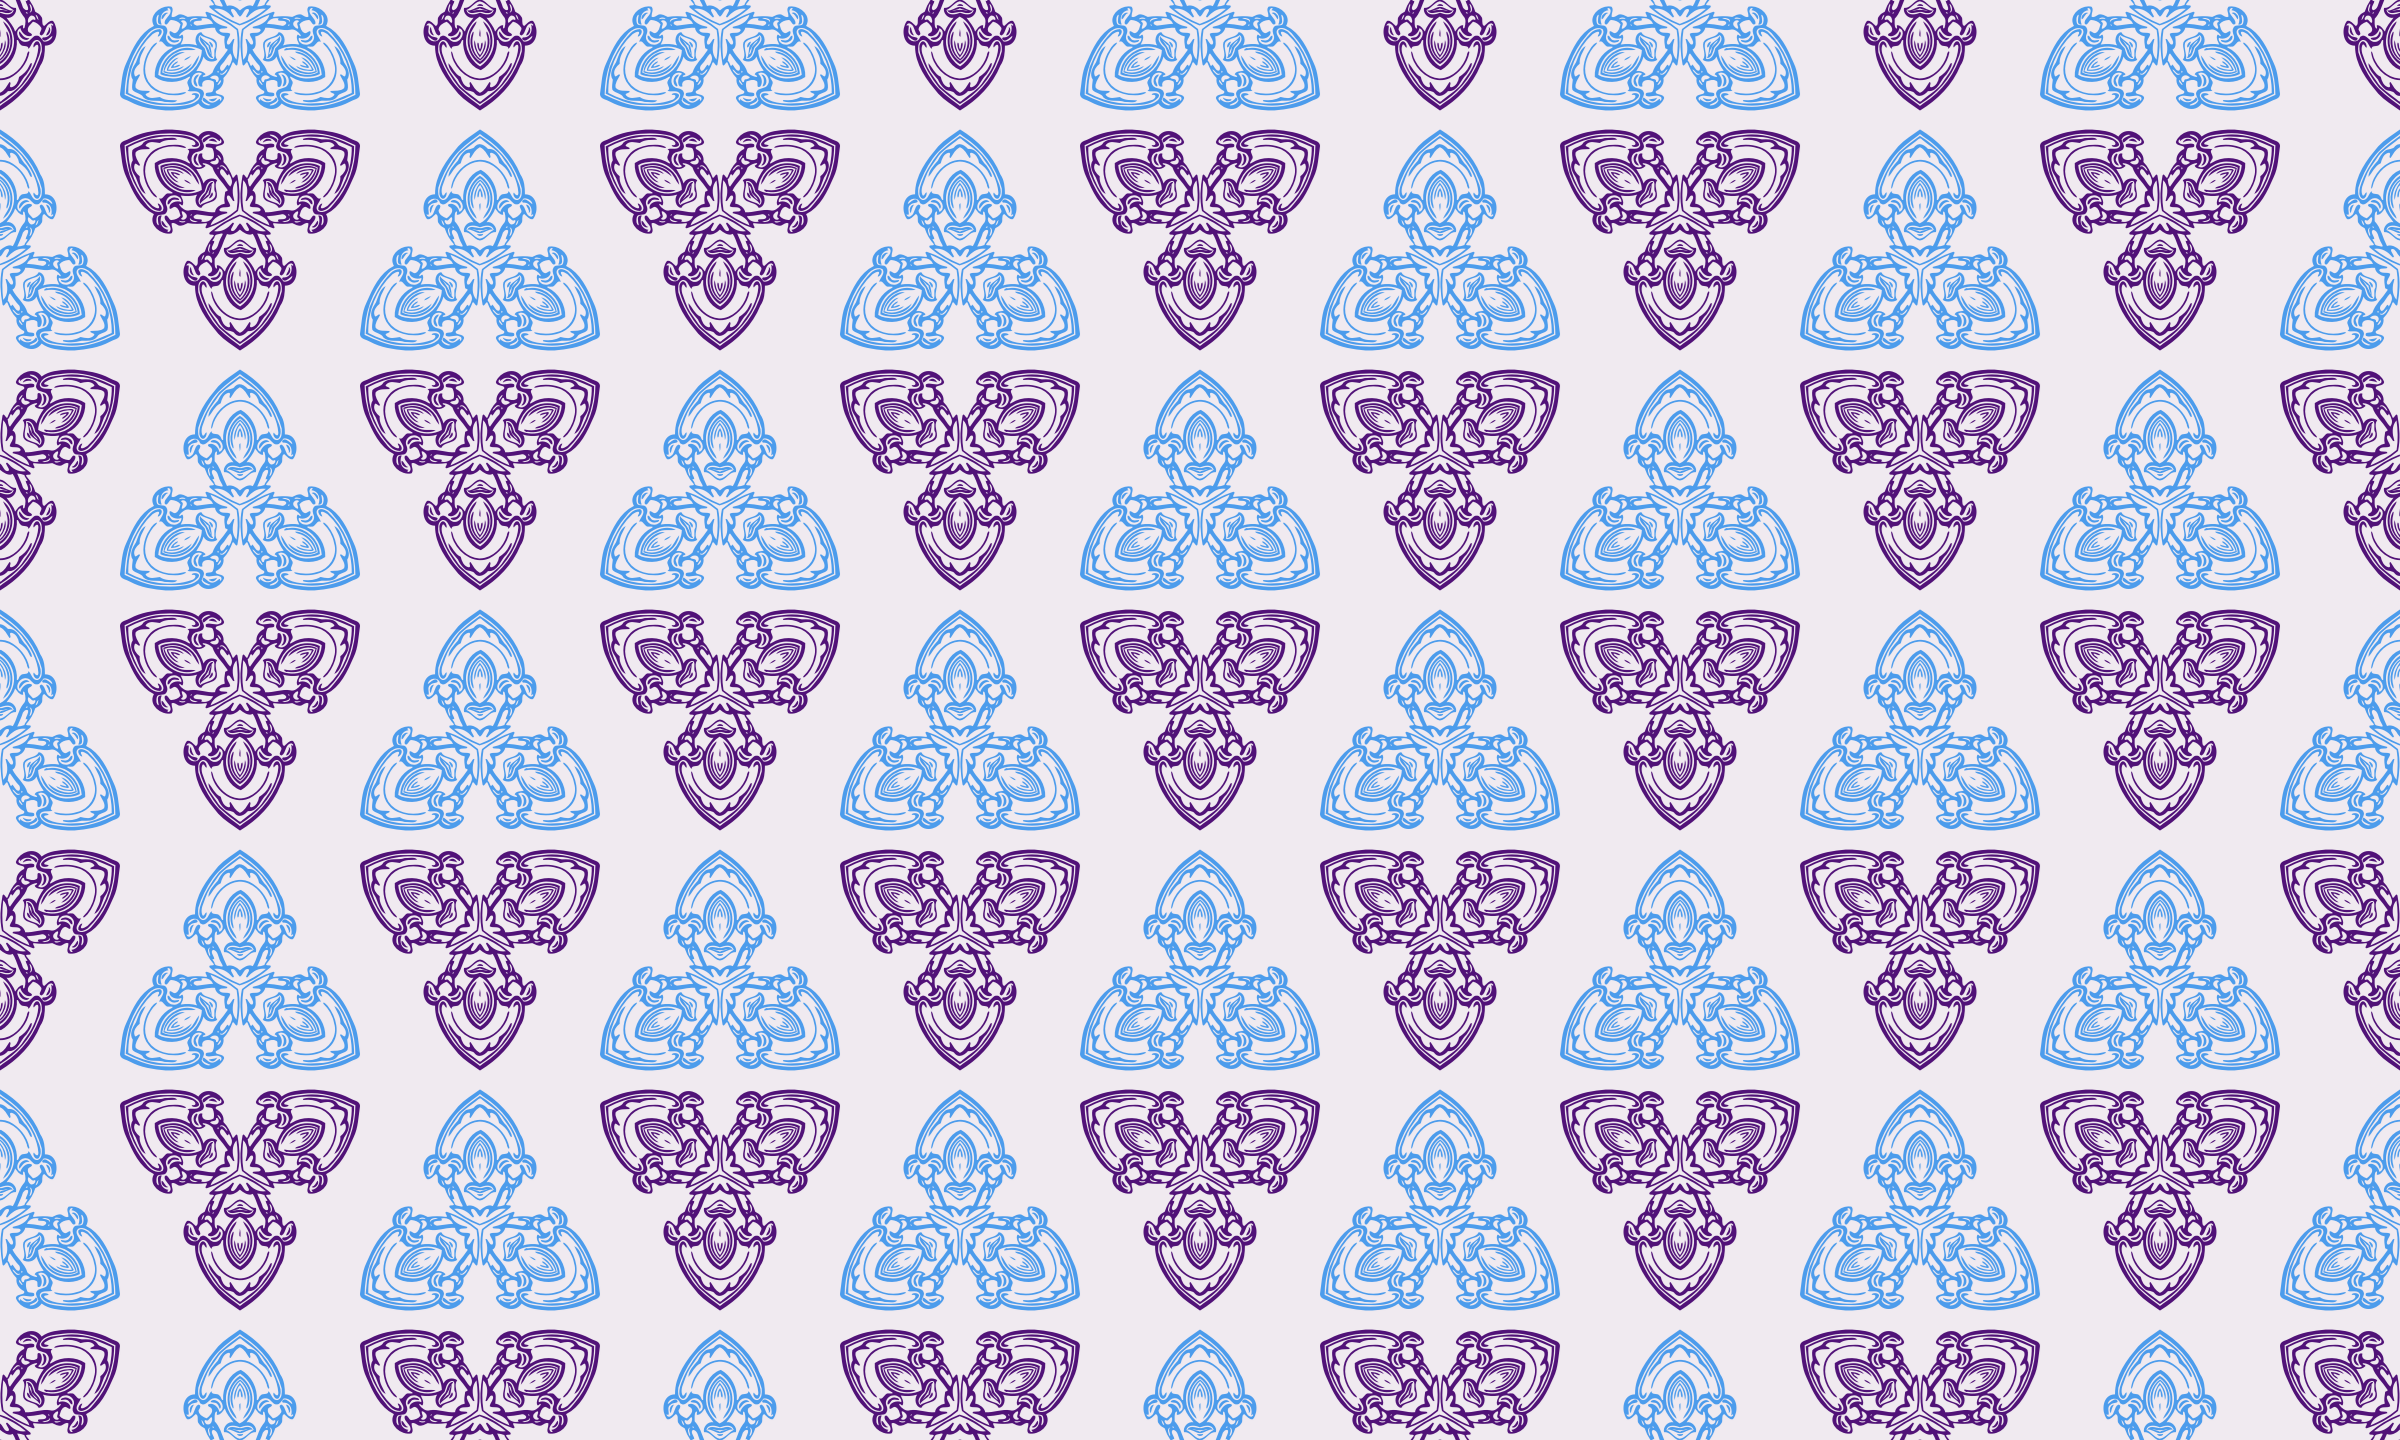 Background pattern 281 (colour 2) by Firkin